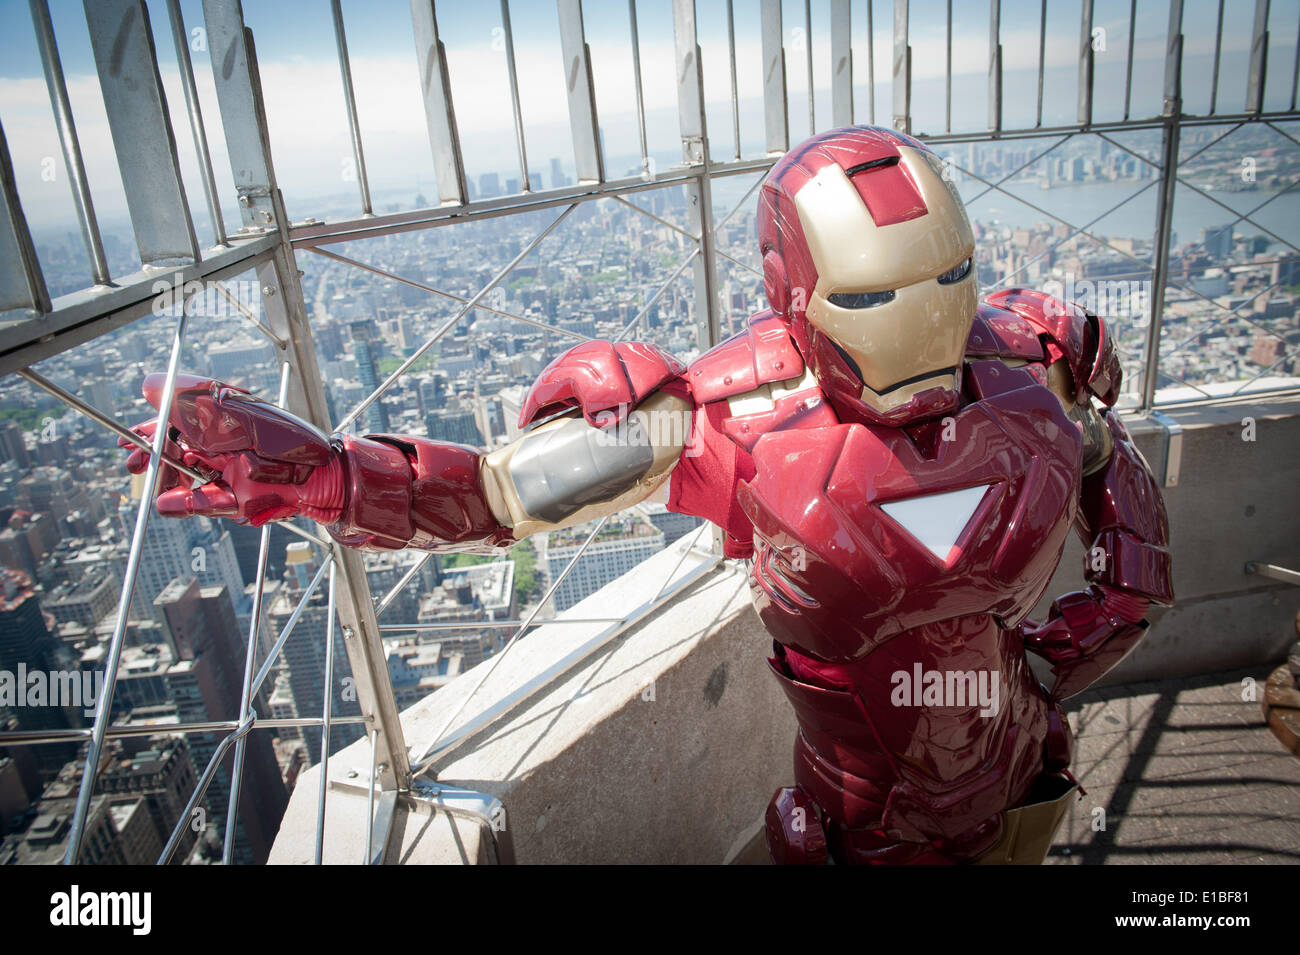 Manhattan, New York, USA. 29th May, 2014. Actor dressed as Iron Man character during PAL's Centennial event at the Empire State Building. © Bryan Smith/ZUMAPRESS.com/Alamy Live News - Stock Image